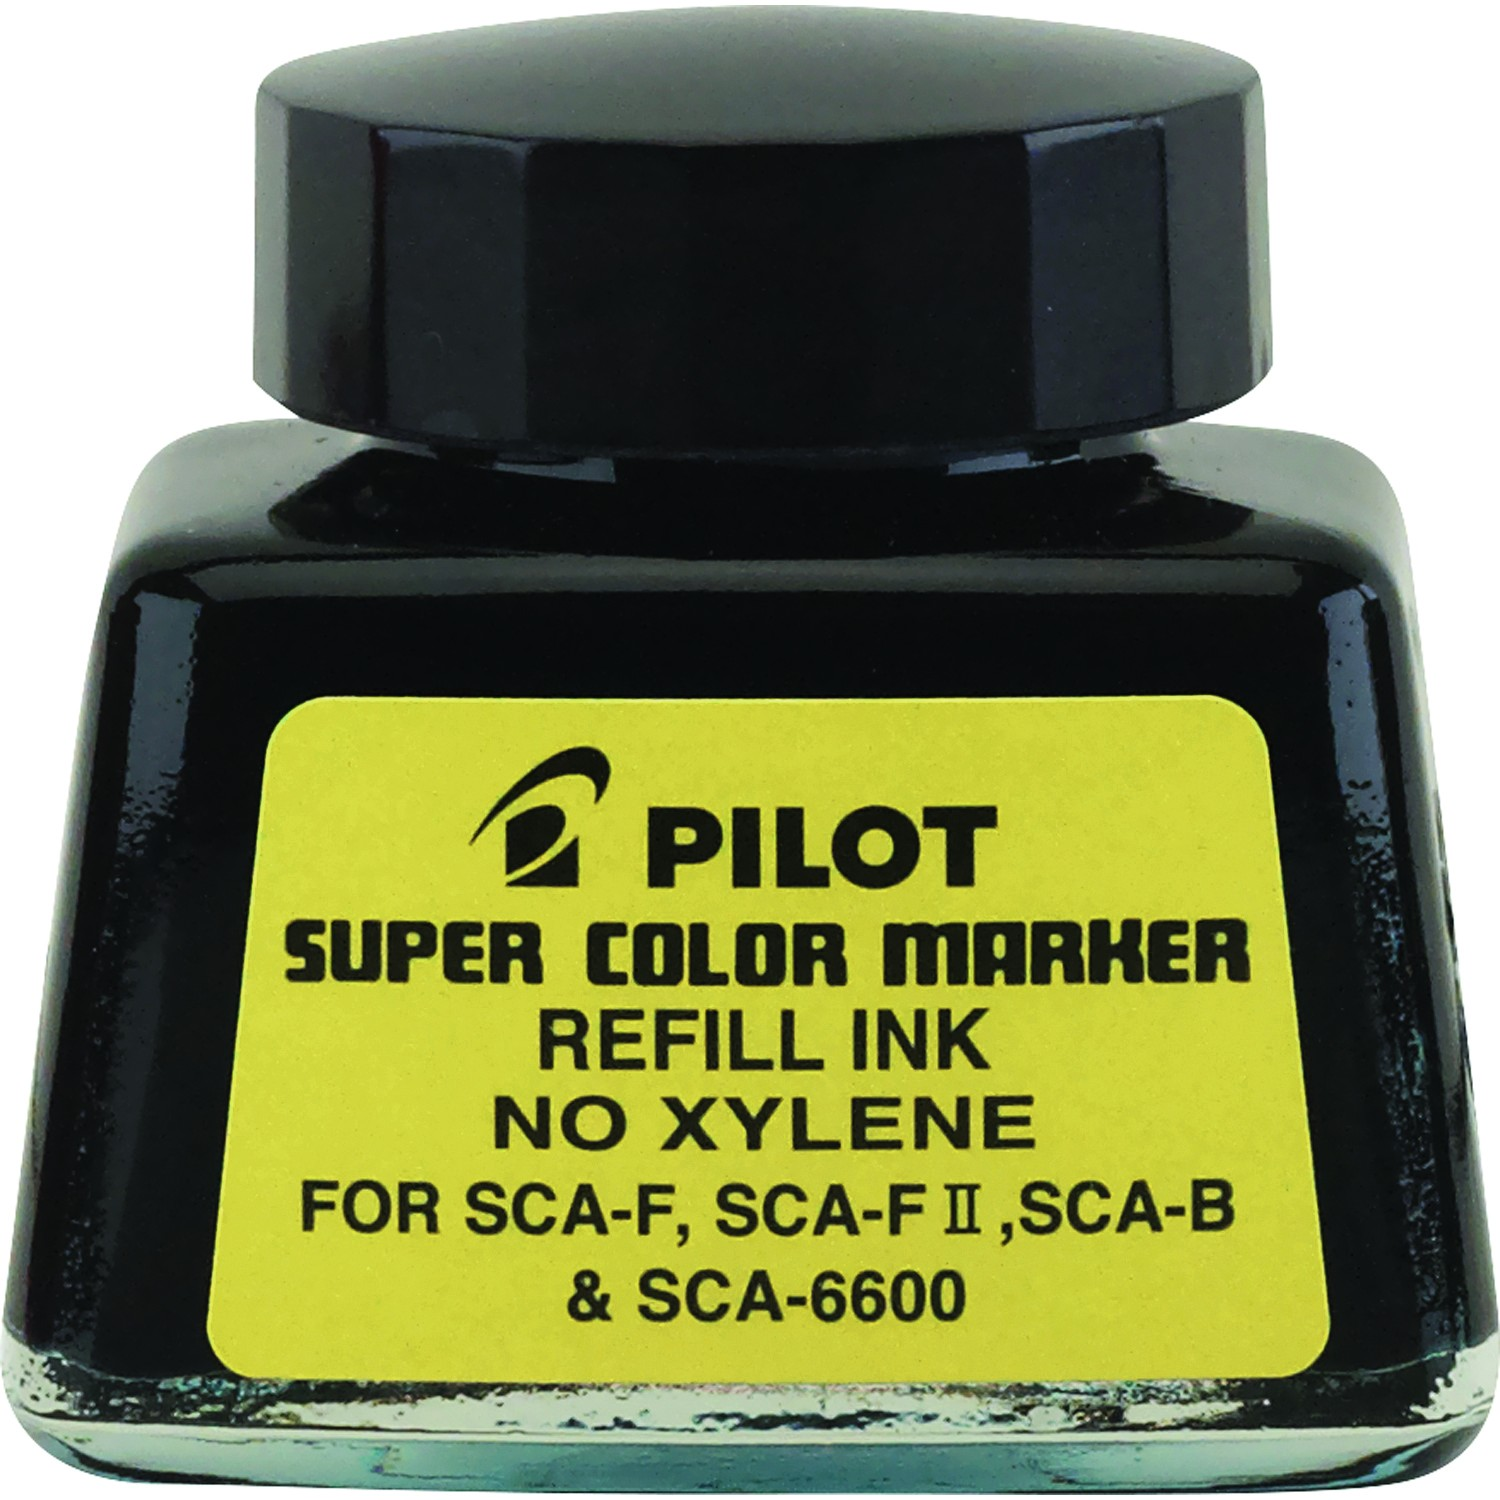 Pilot SC-RF Refill Ink for Permanent Markers, Black